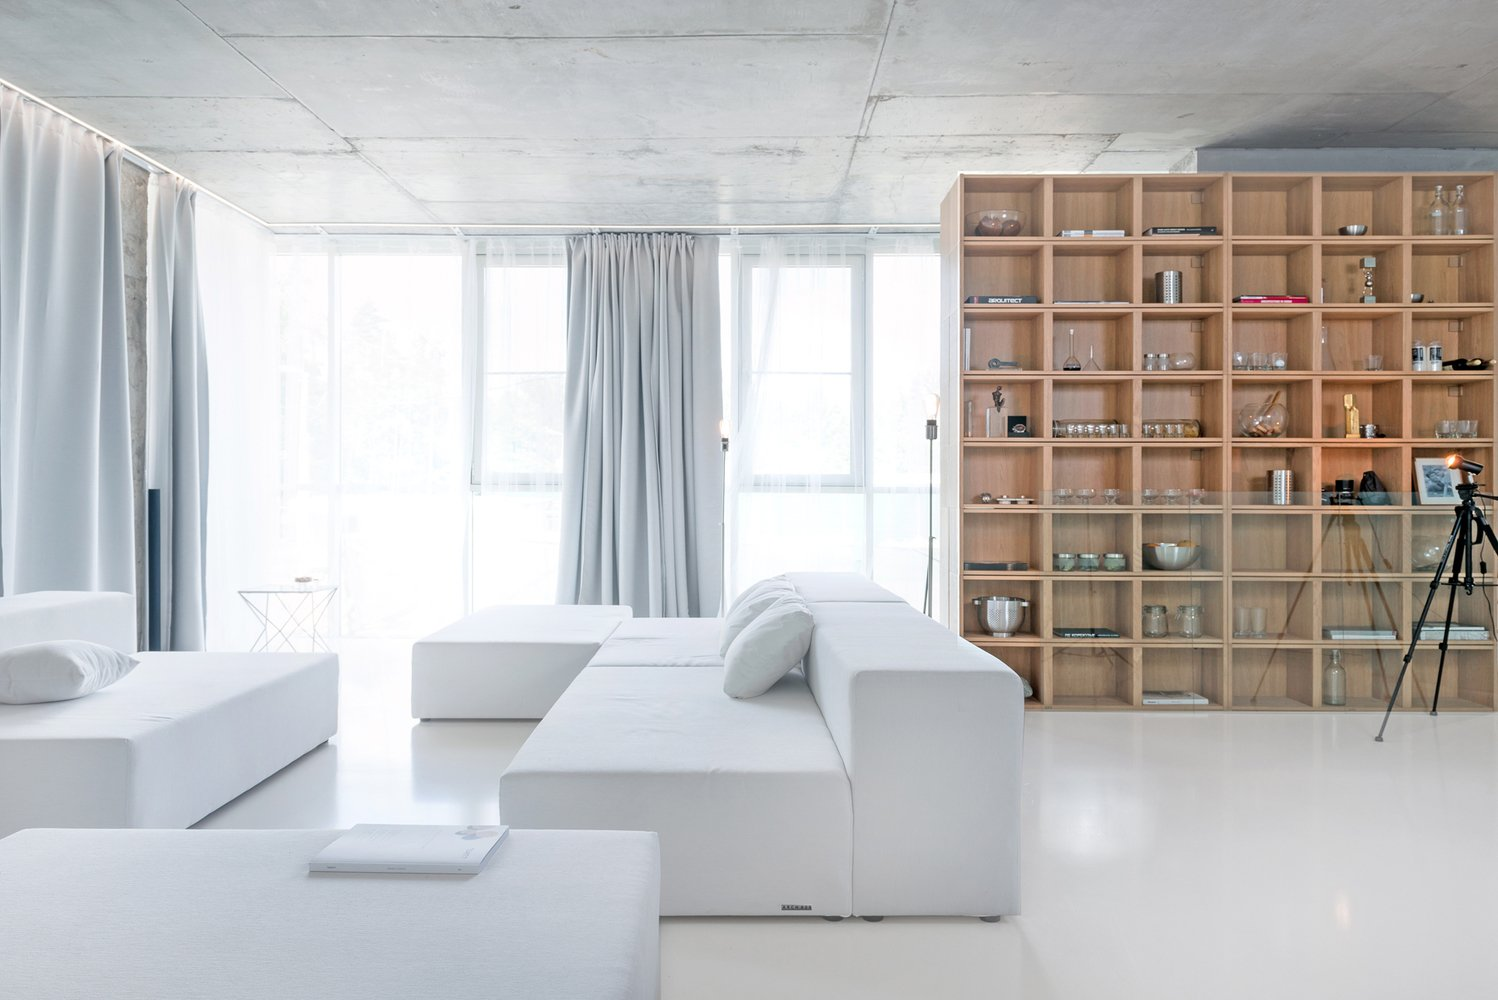 Photo 1 of 4 in Apartment W_G+BETON by ARCH.625